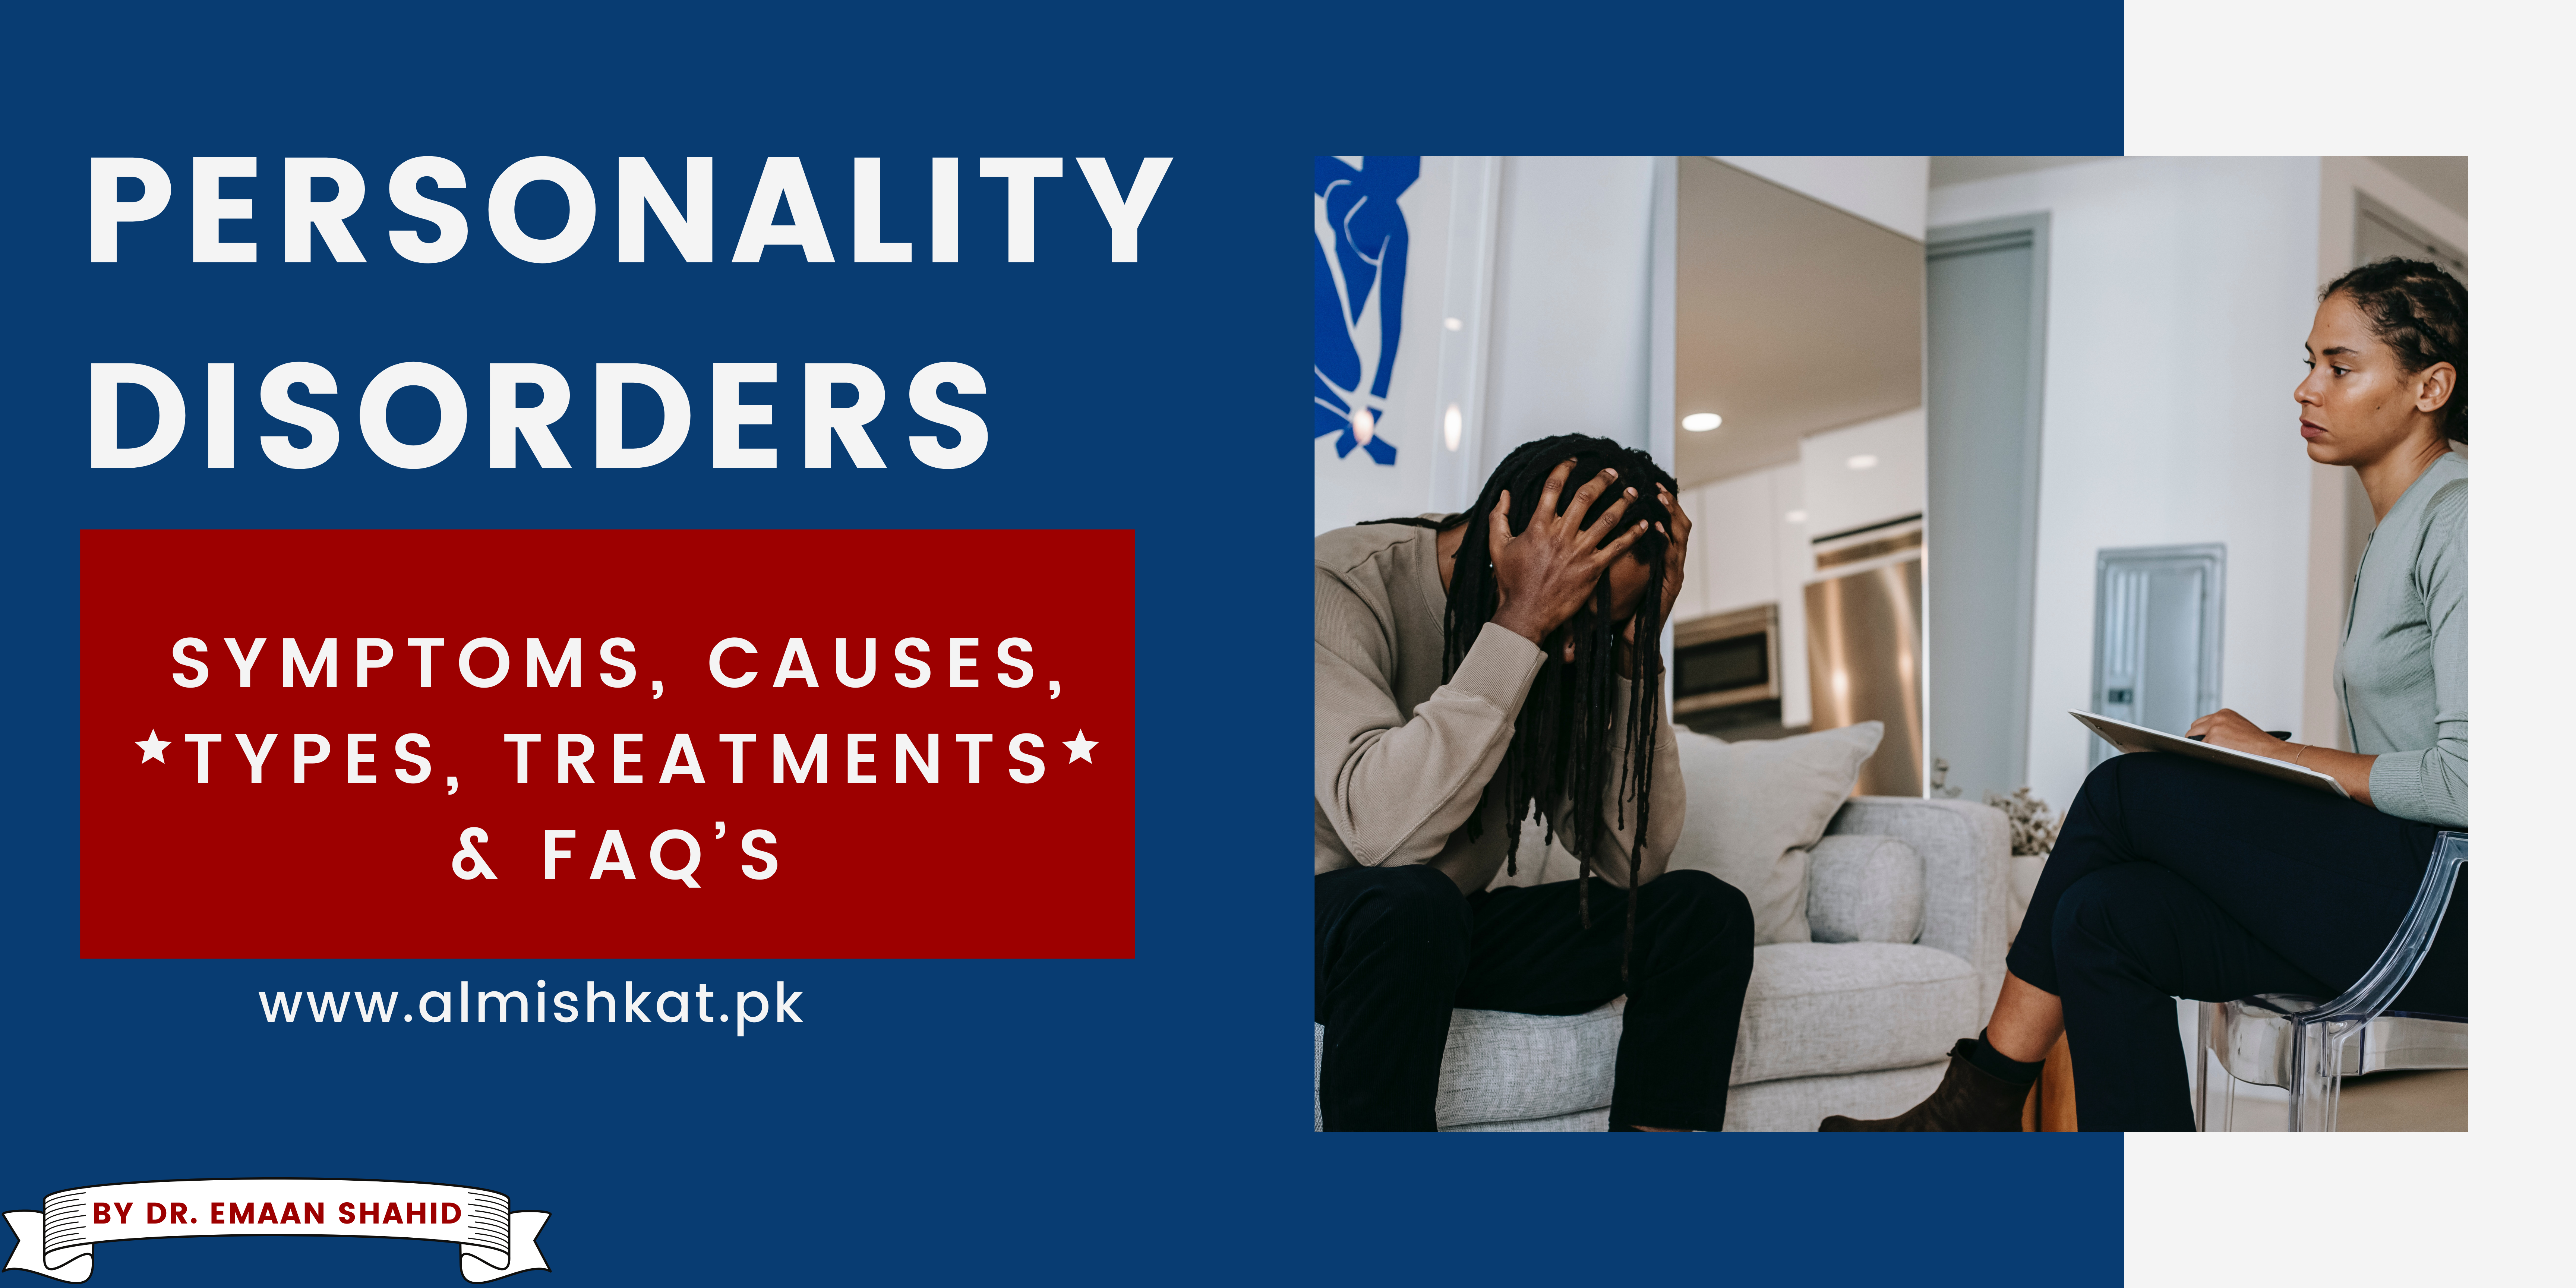 Personality Disorders Featured Image